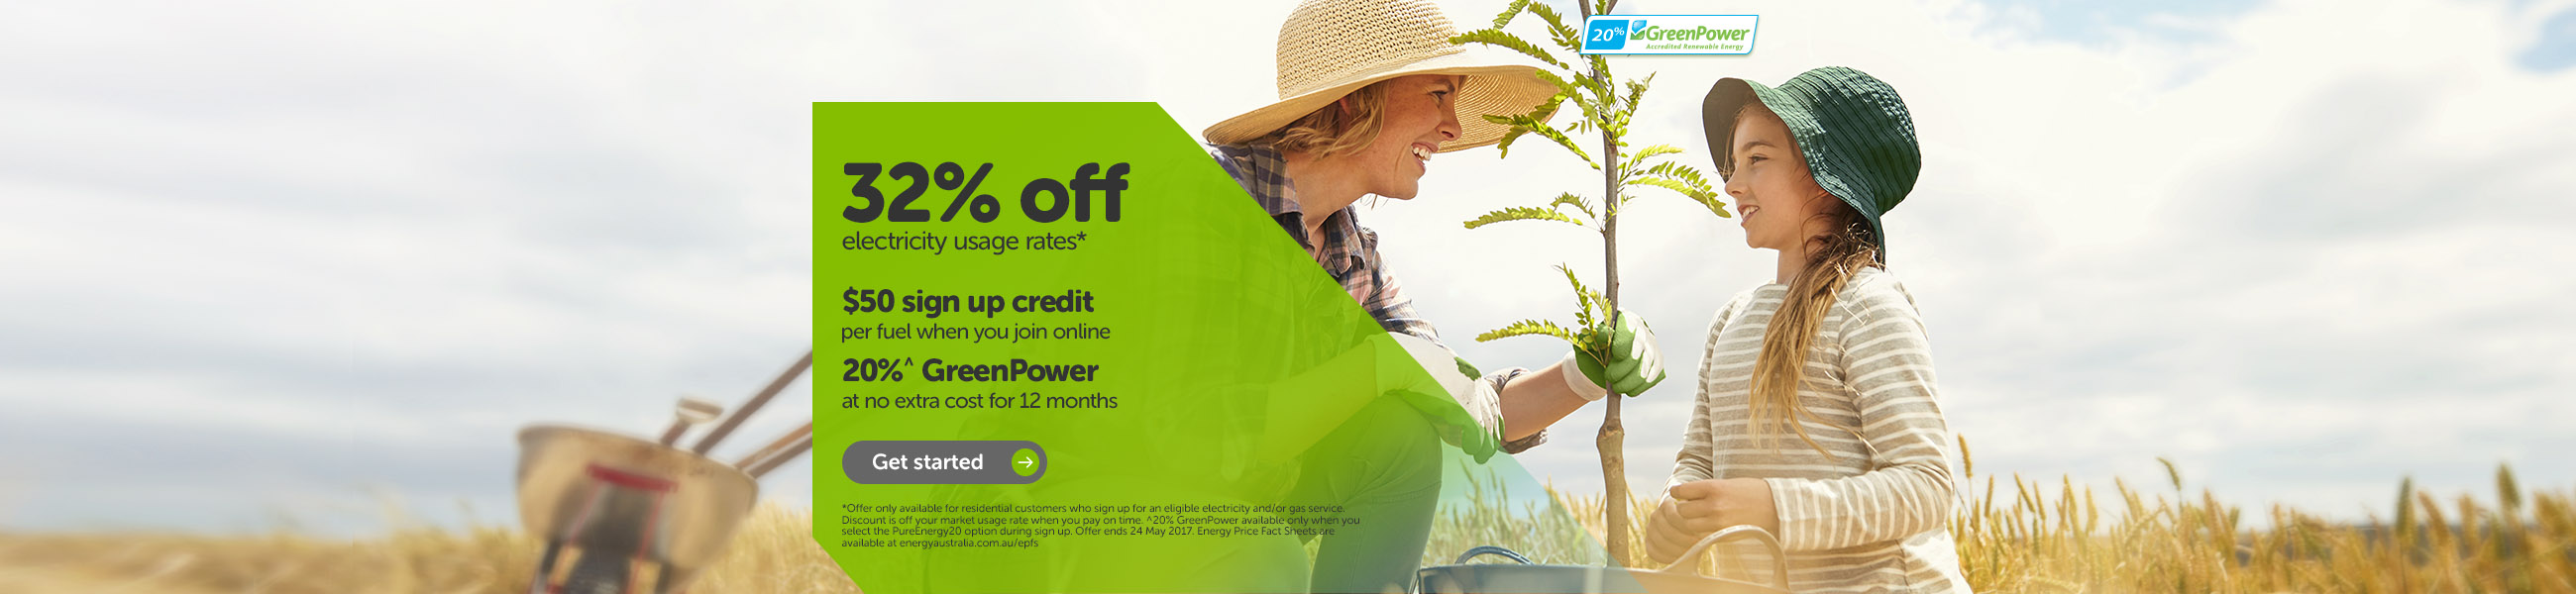 Get our best rates today and be greener at no extra cost for tomorrow.